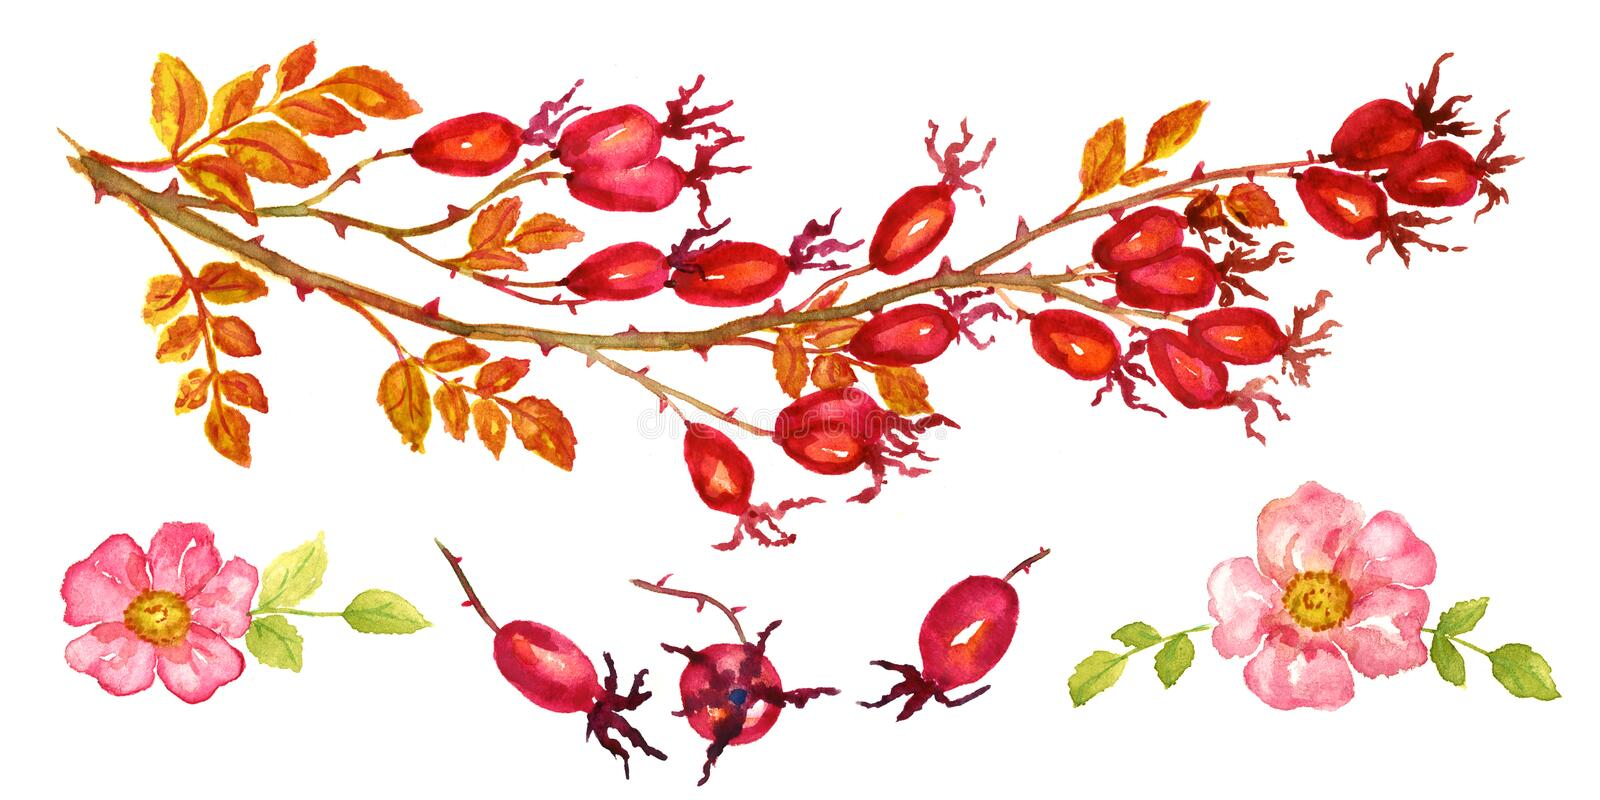 Sprig of rose hips with berries and blossoms stock illustration